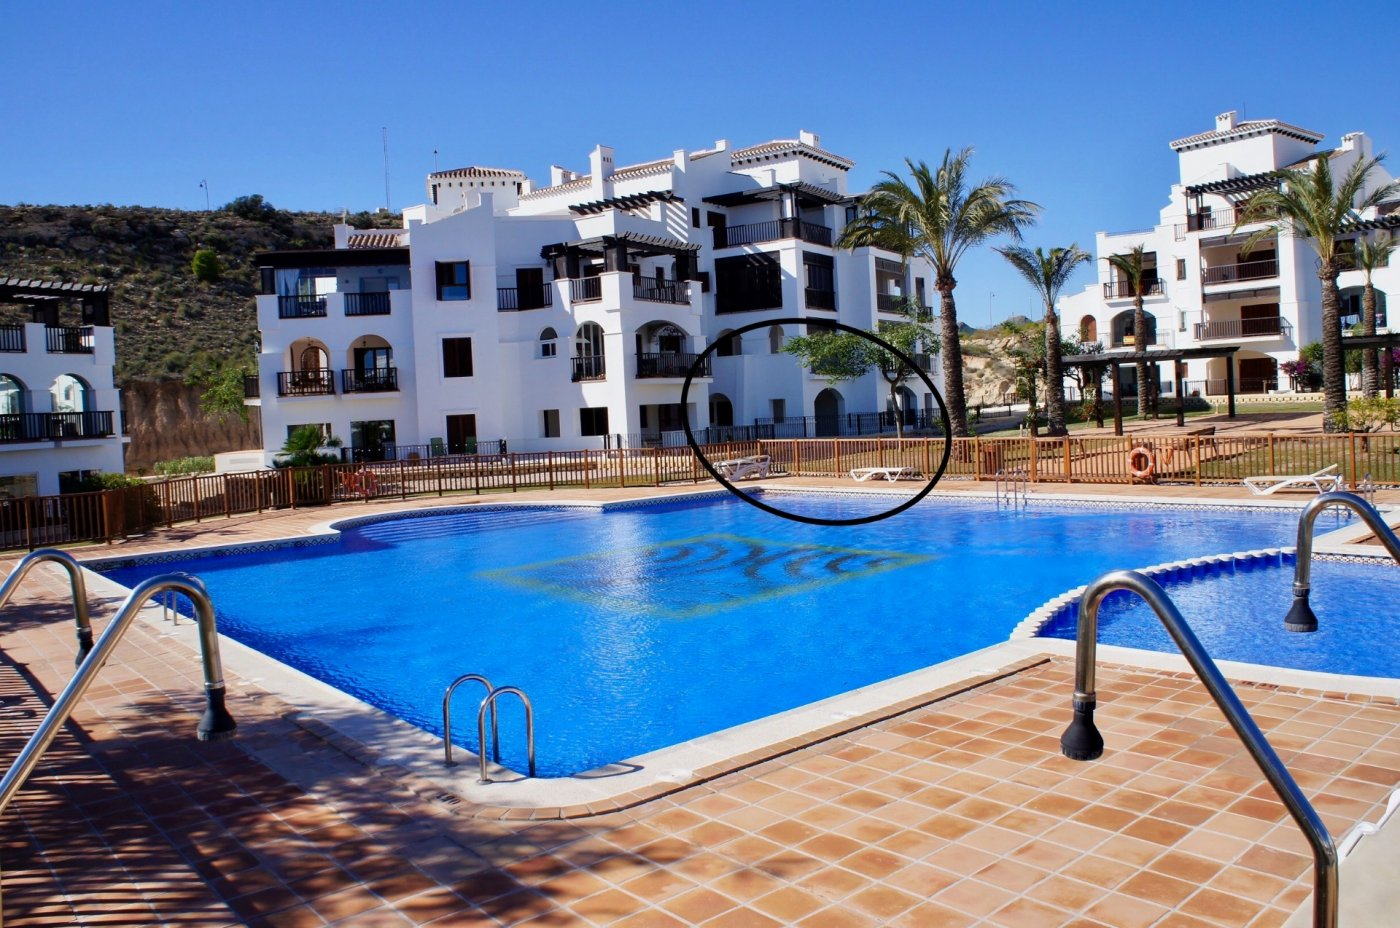 Apartment ref 2778 for sale in El Valle Golf Resort Spain - Quality Homes Costa Cálida